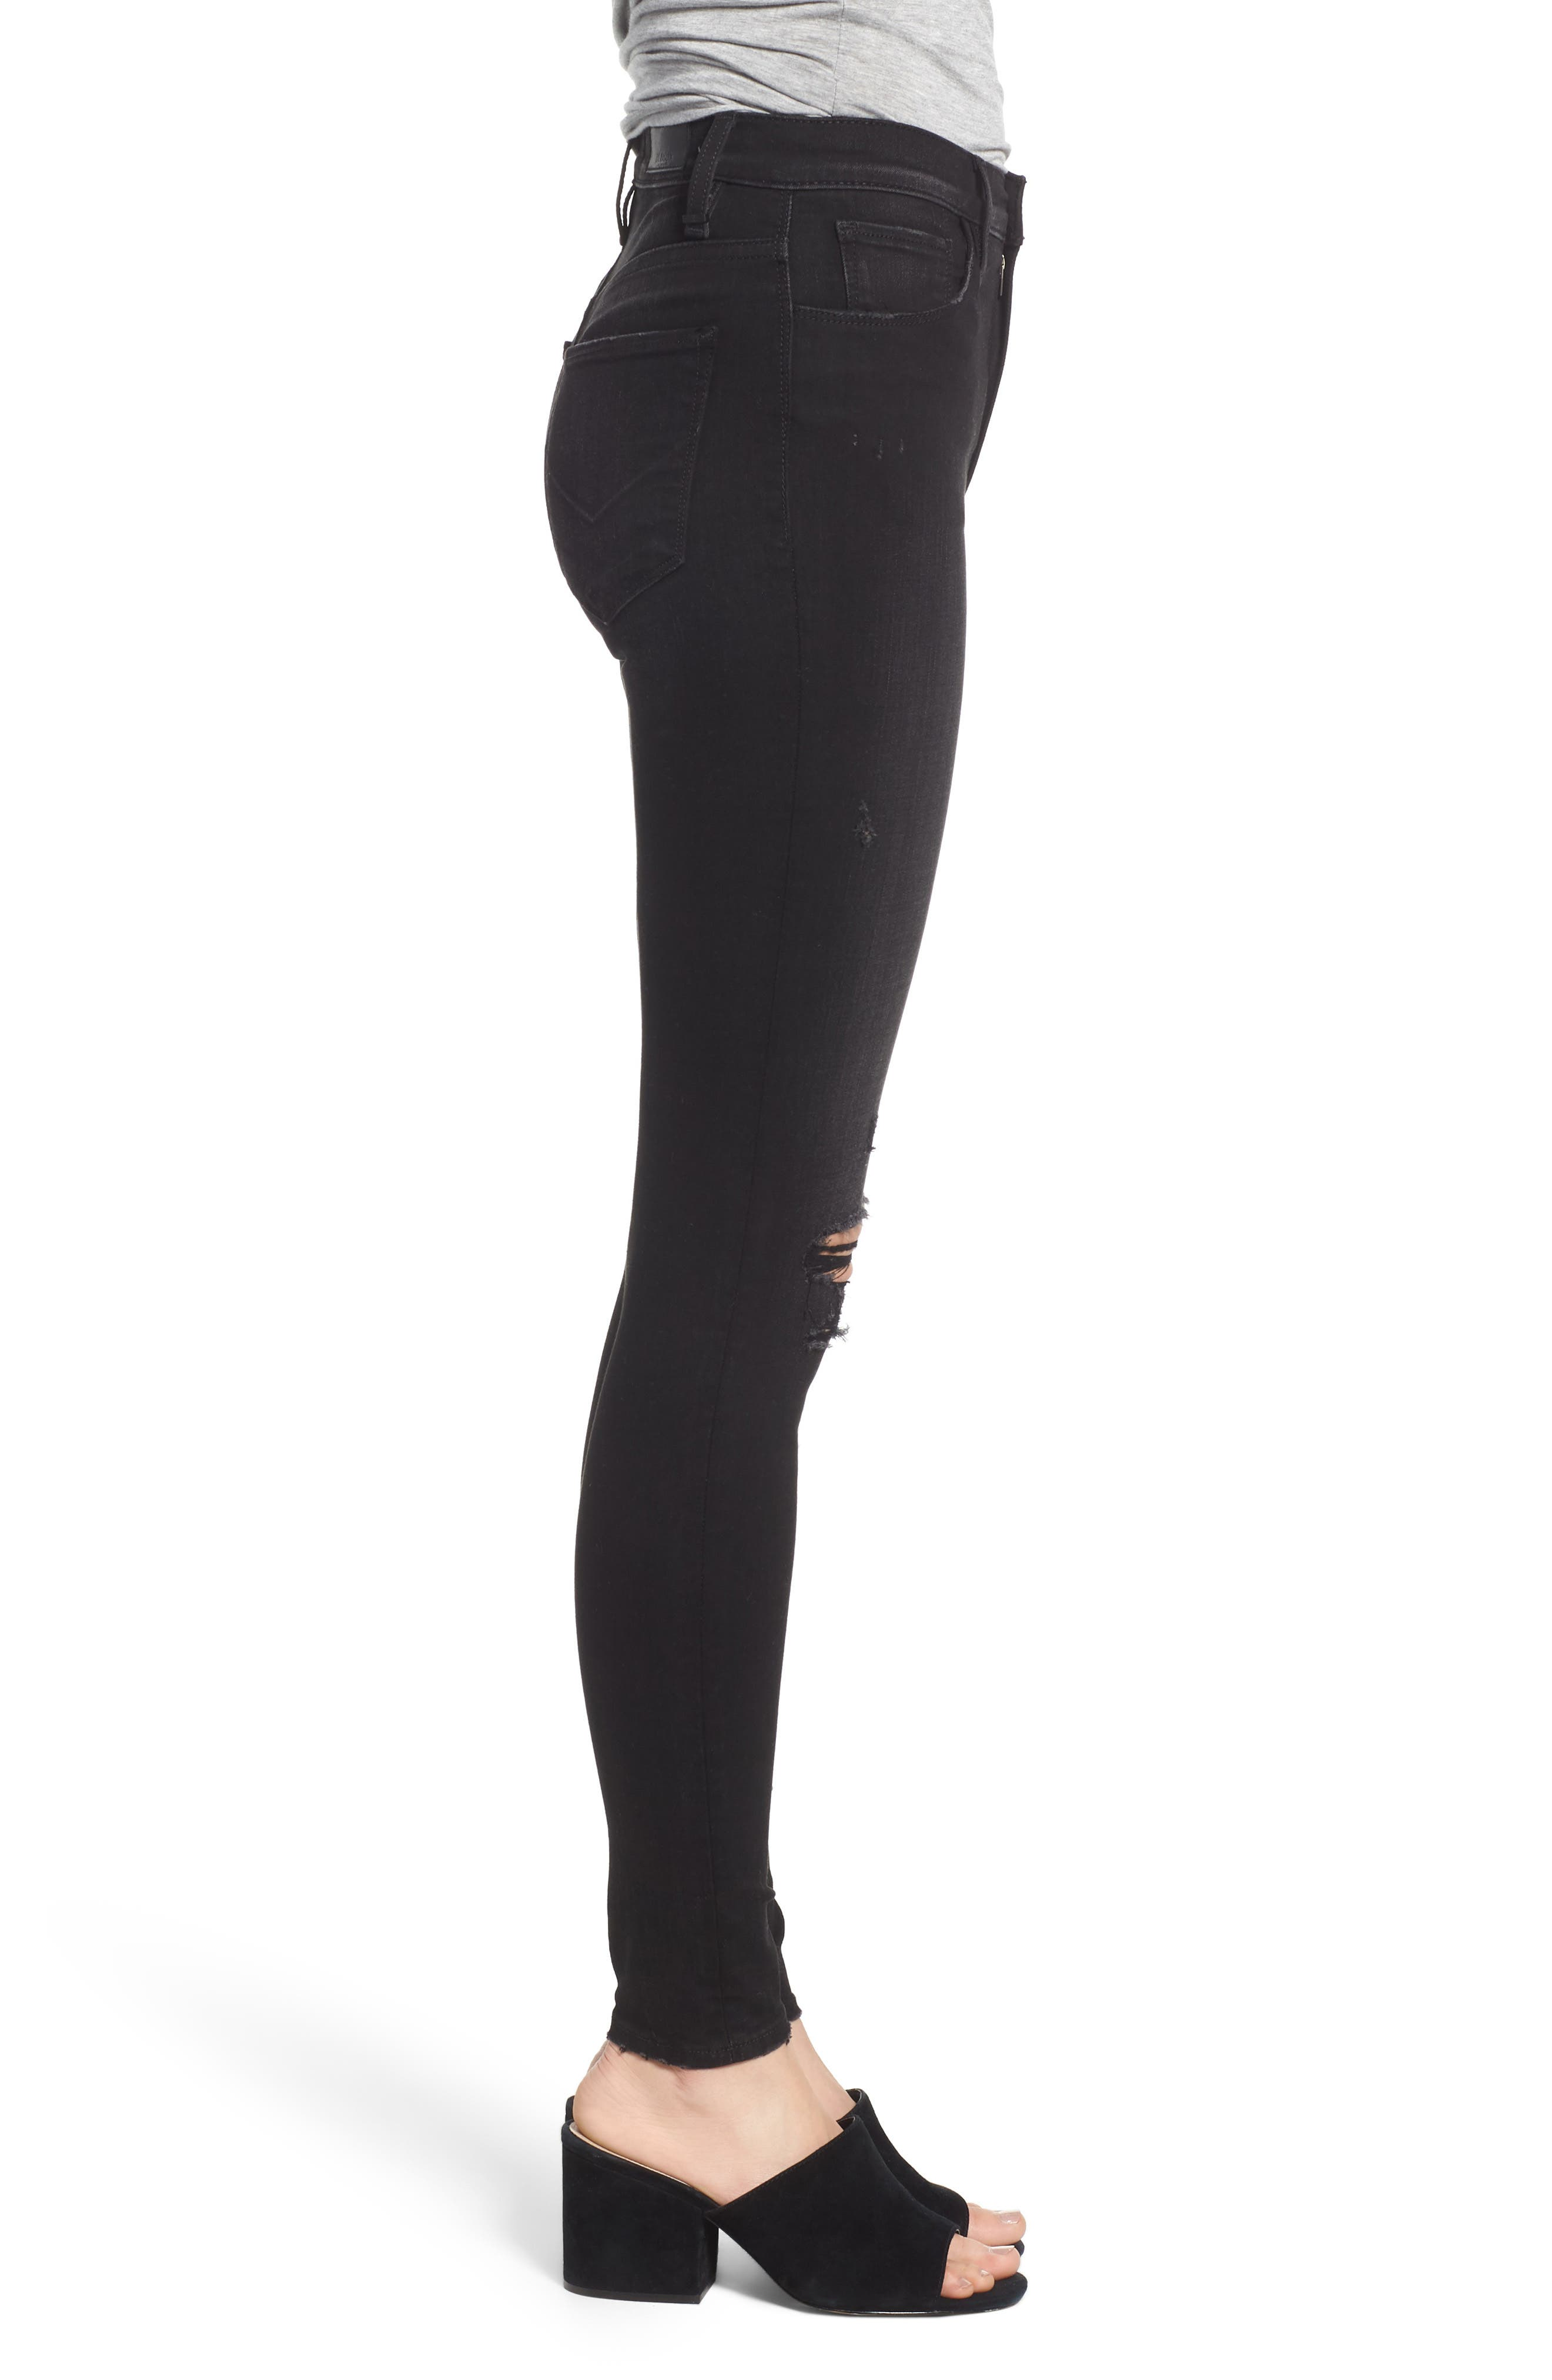 Barbara Ripped High Waist Super Skinny Jeans,                             Alternate thumbnail 3, color,                             WESTBOUND